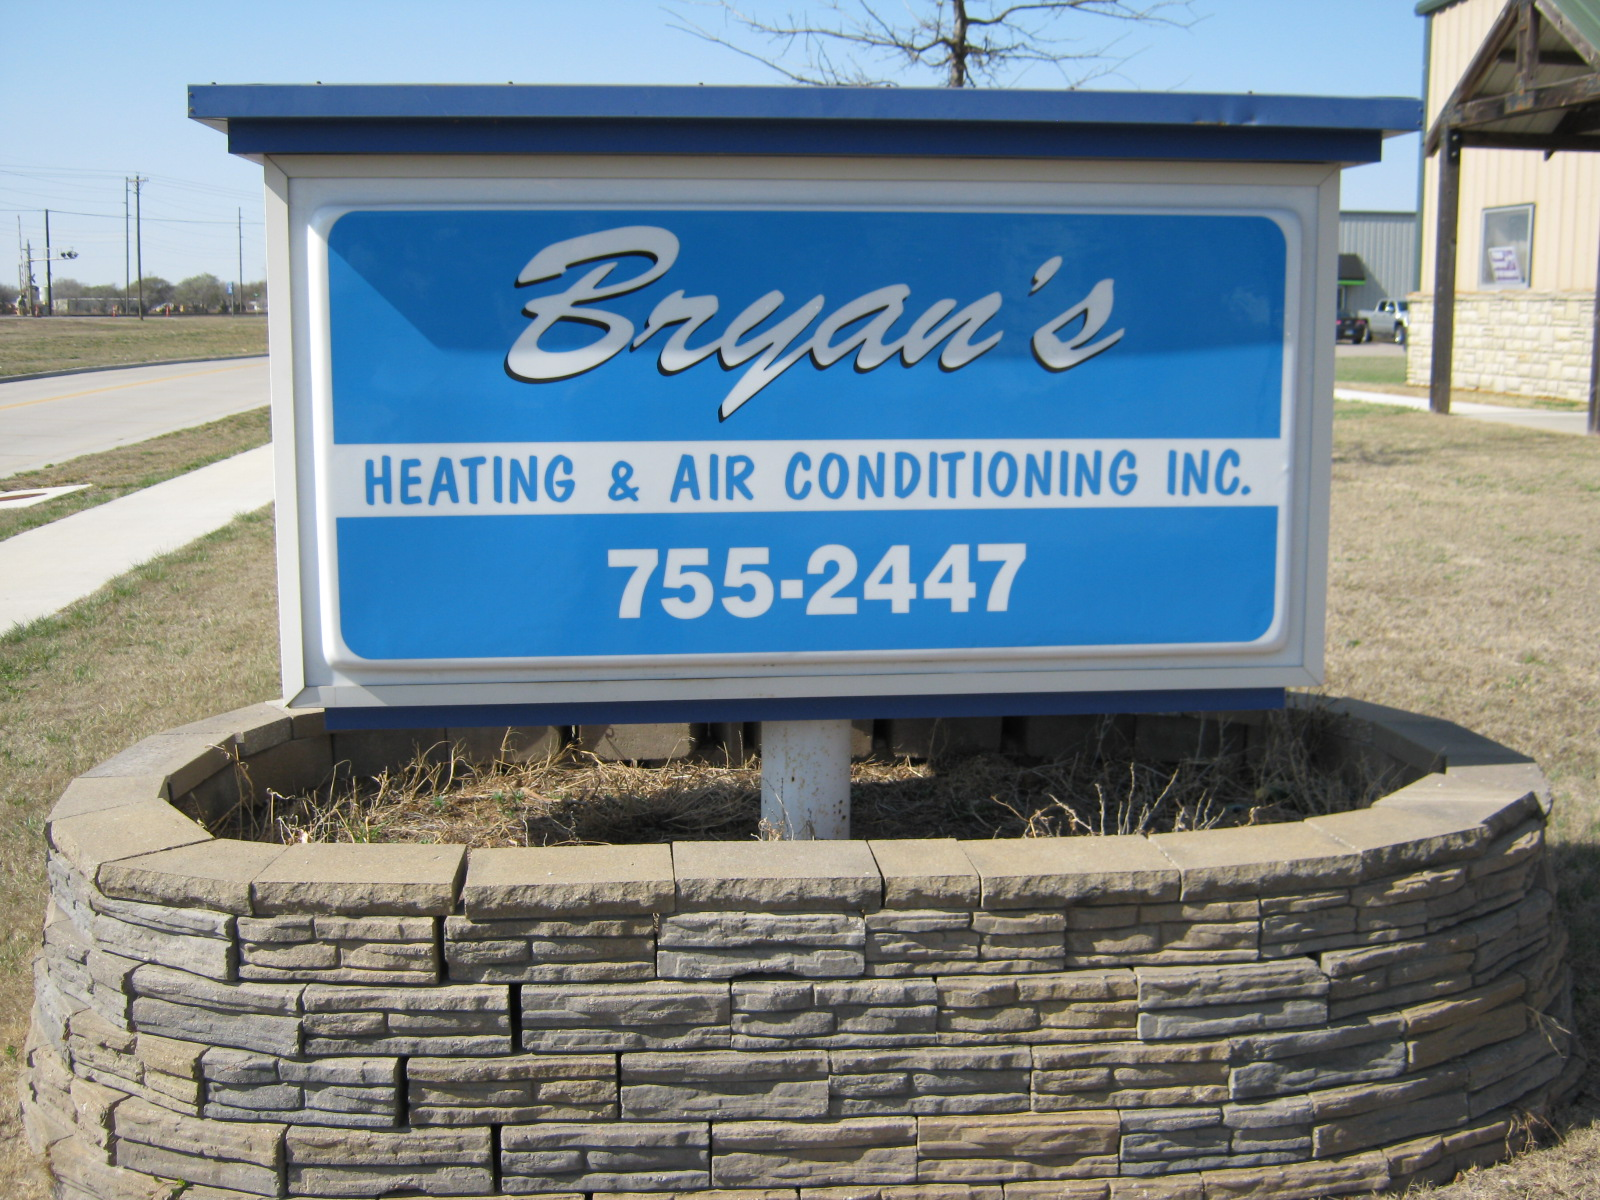 Bryan's Heating & Air Conditioning, Inc. image 9